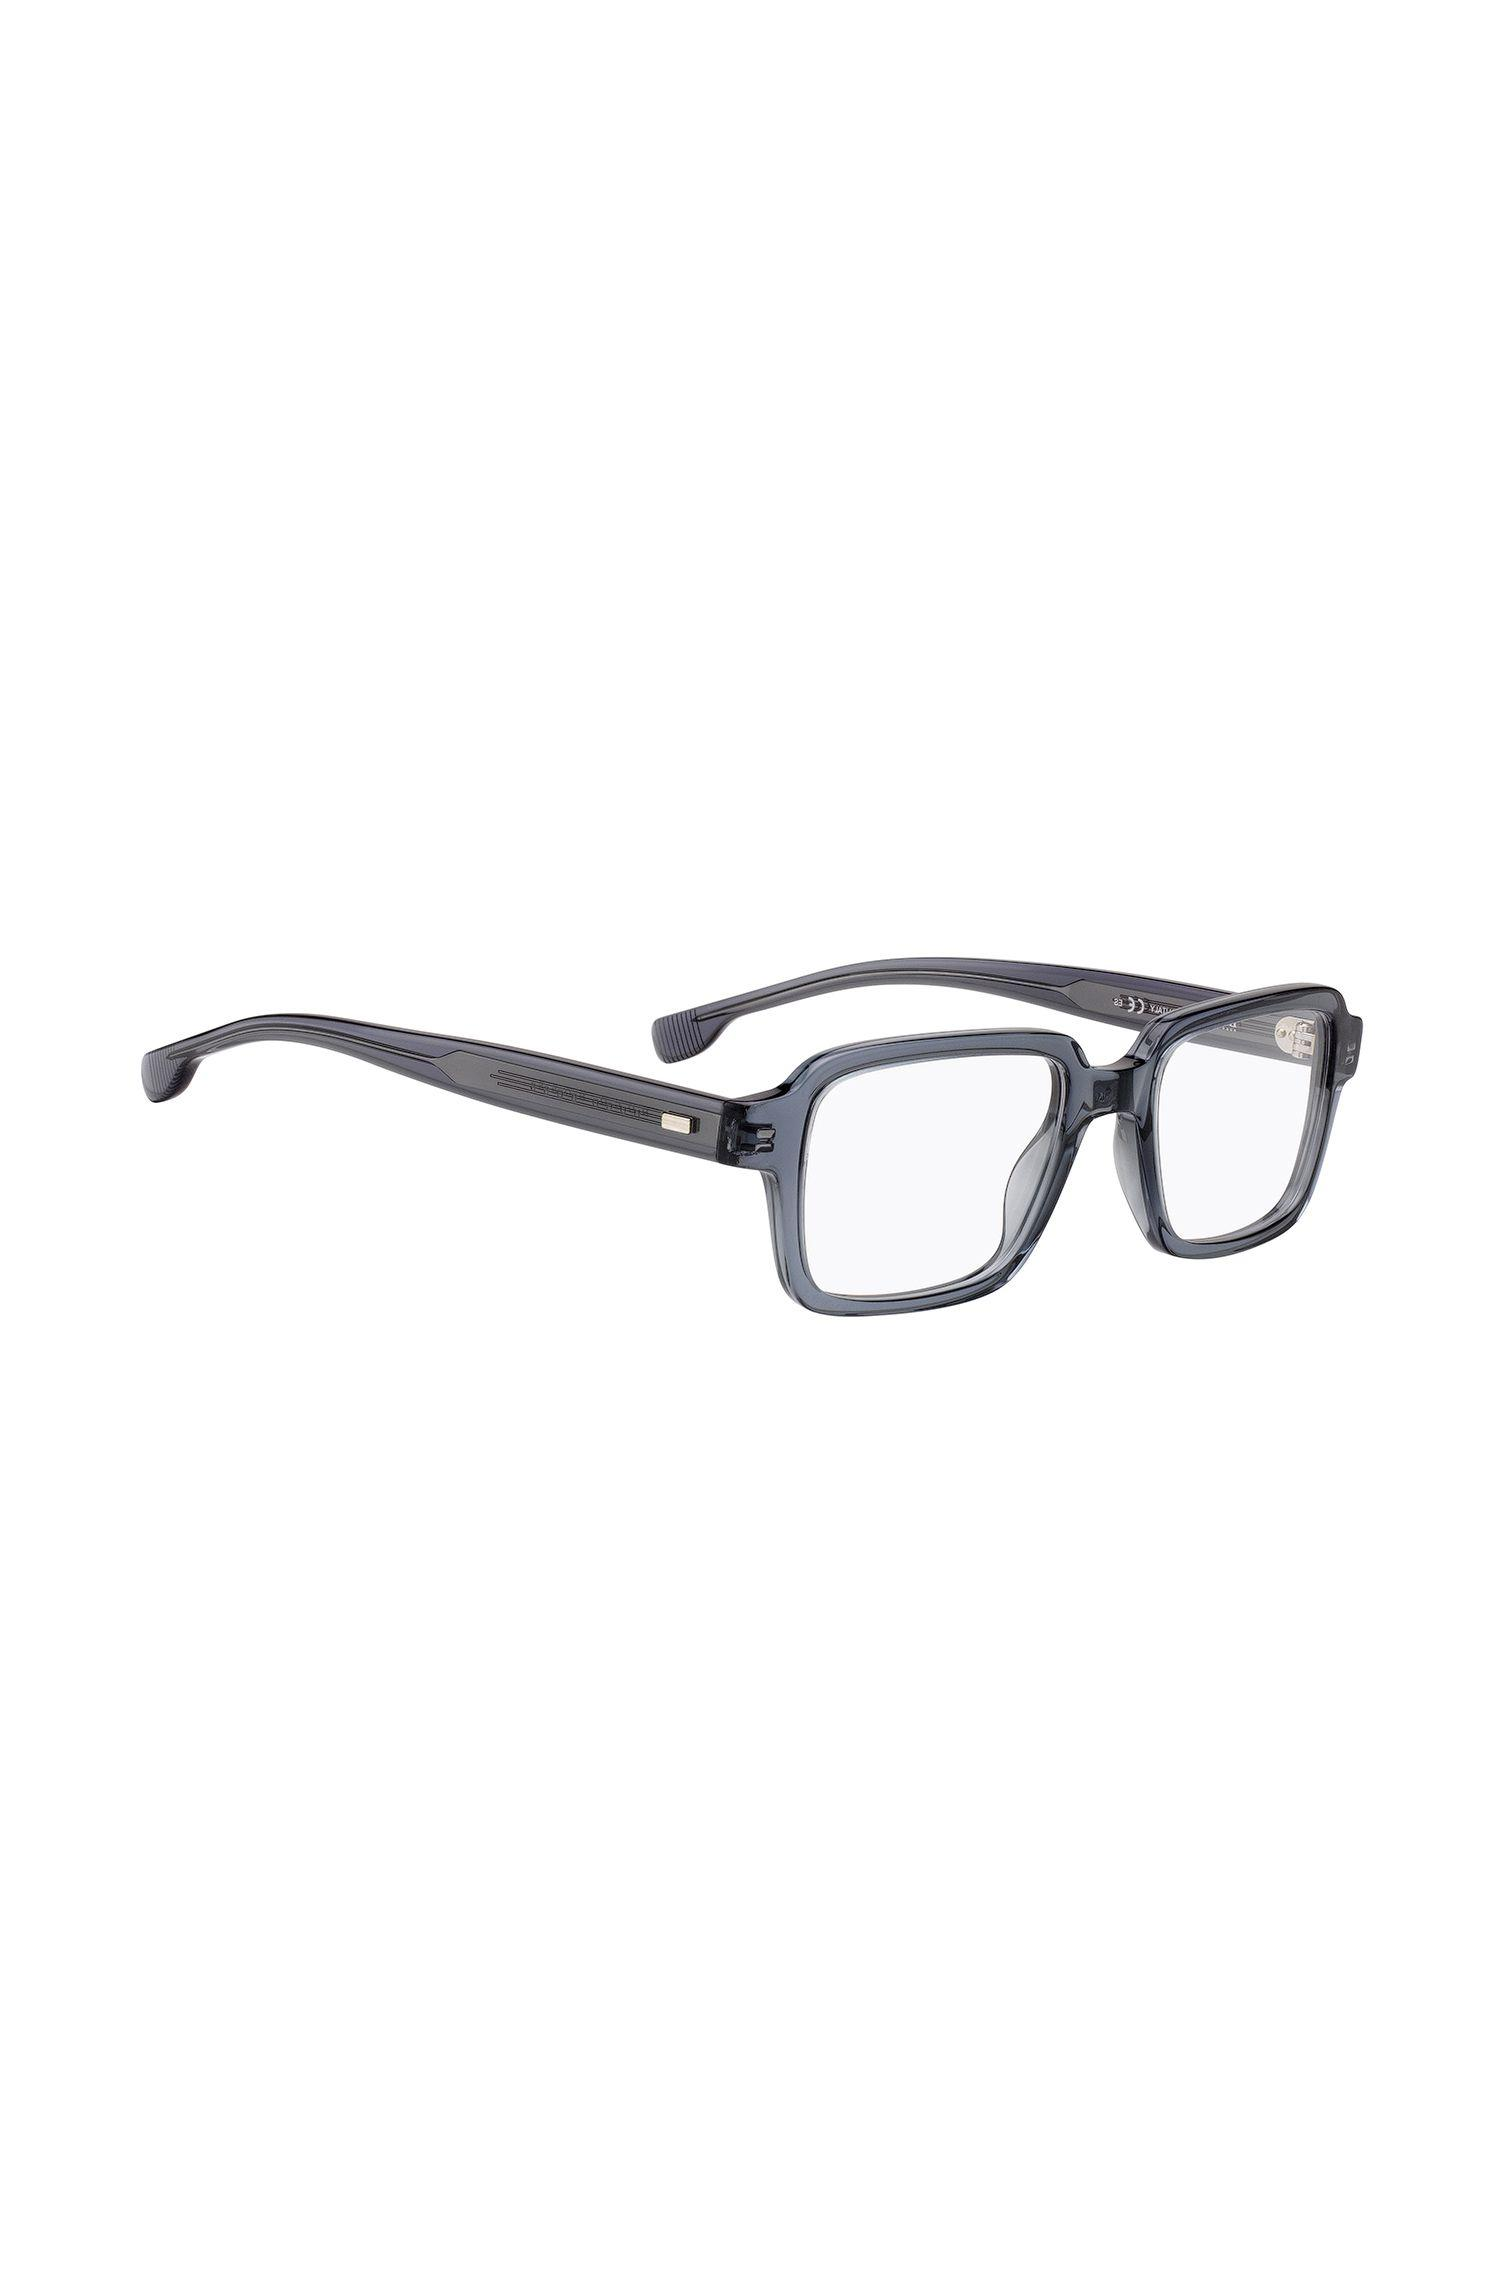 5b1a12f57f BOSS Retro-inspired Glasses In Transparent Grey Acetate in Gray for ...